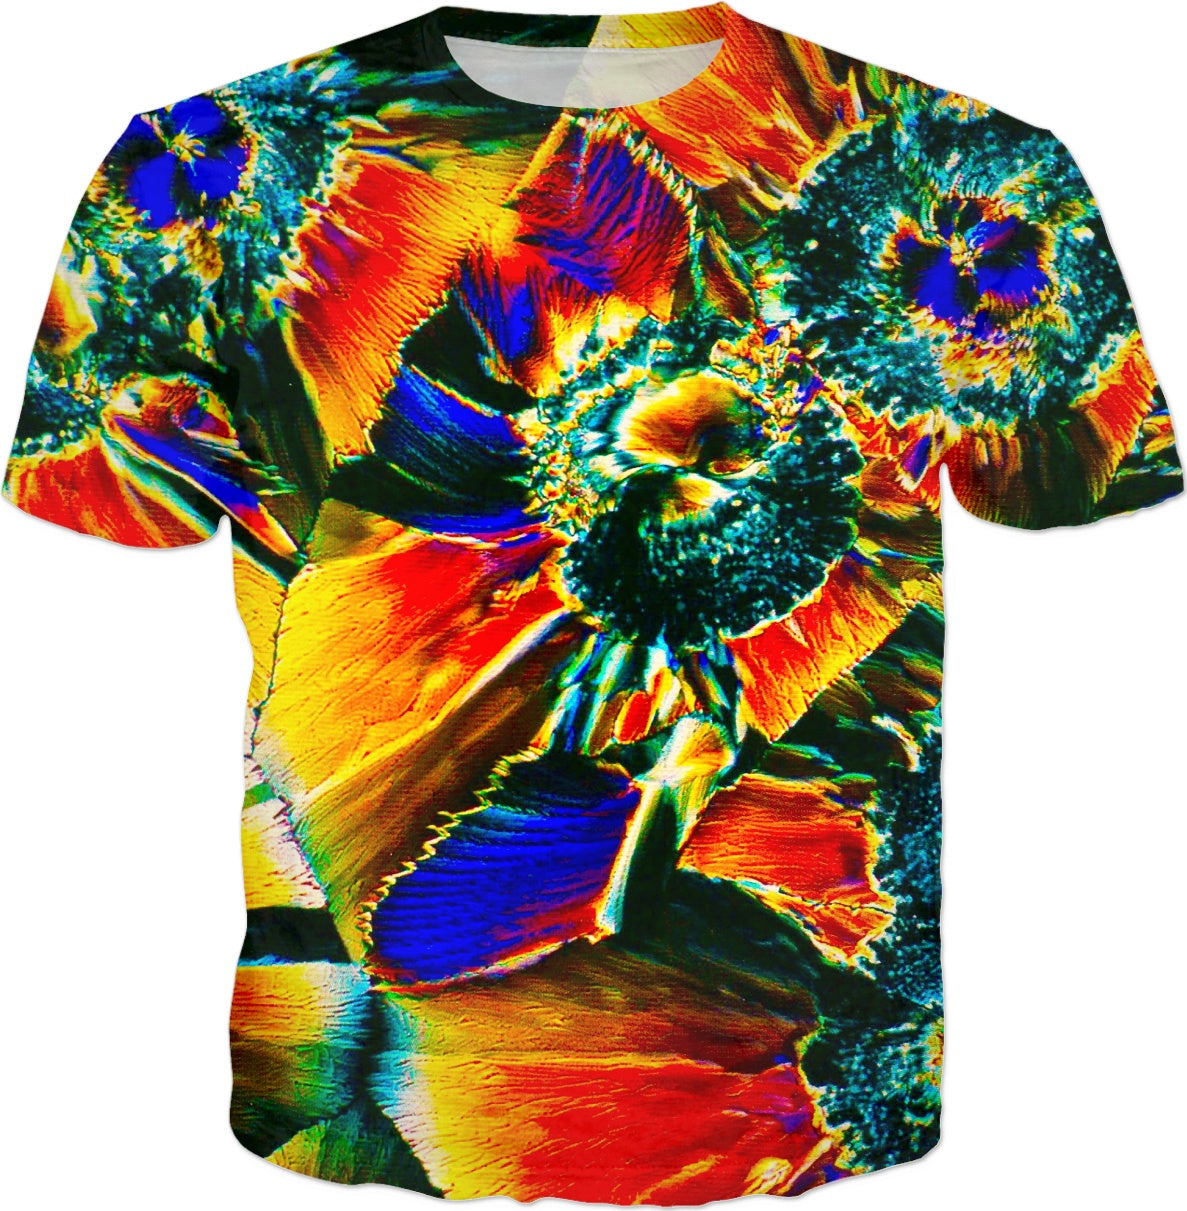 Crystal Cosmic Flower - Luxe Design T-shirt